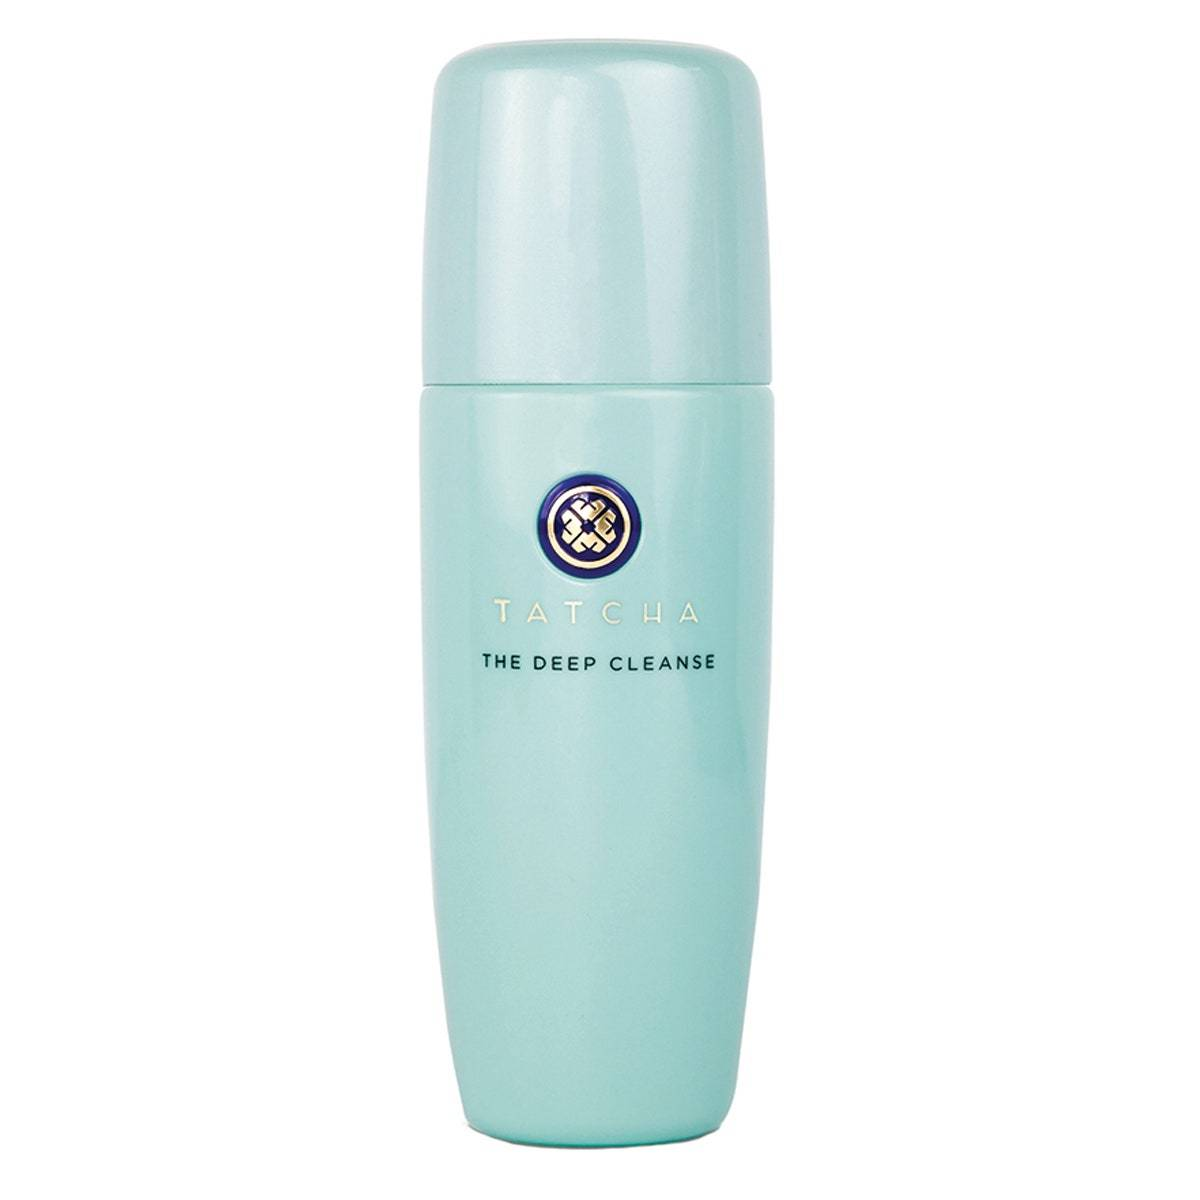 TATCHA The Deep Cleanser Travel